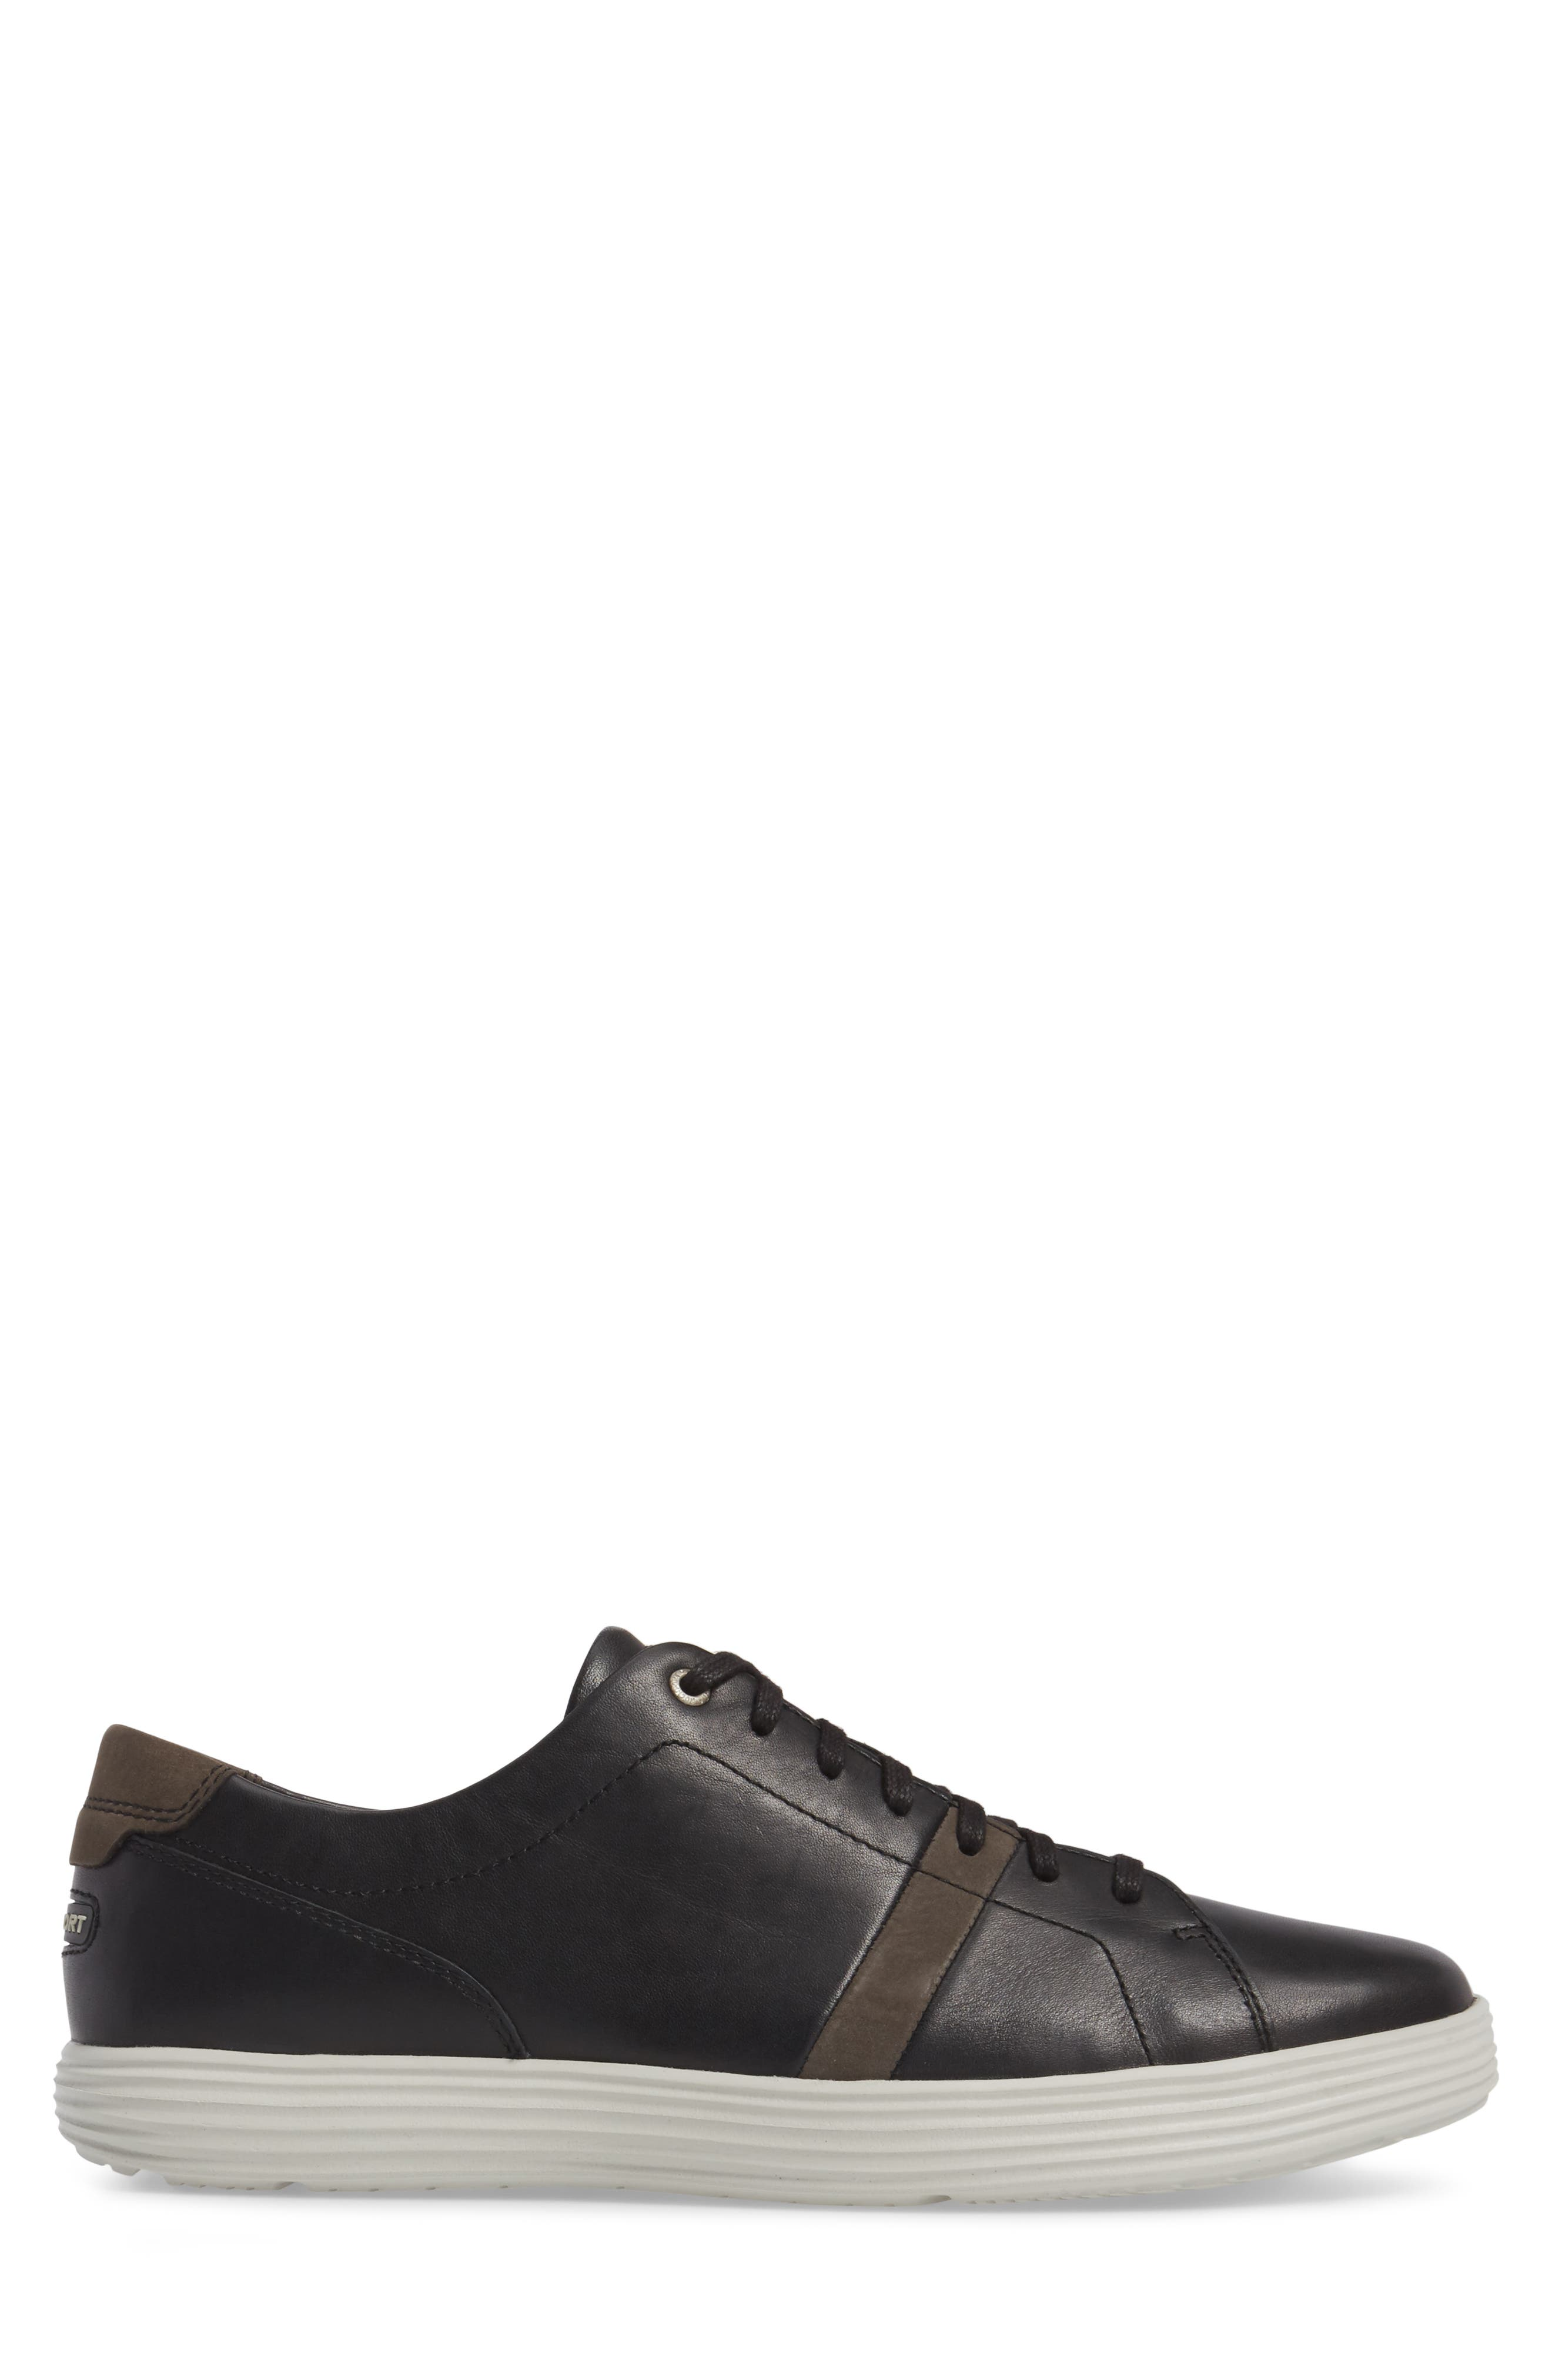 Thurston Sneaker,                             Alternate thumbnail 3, color,                             Black Leather